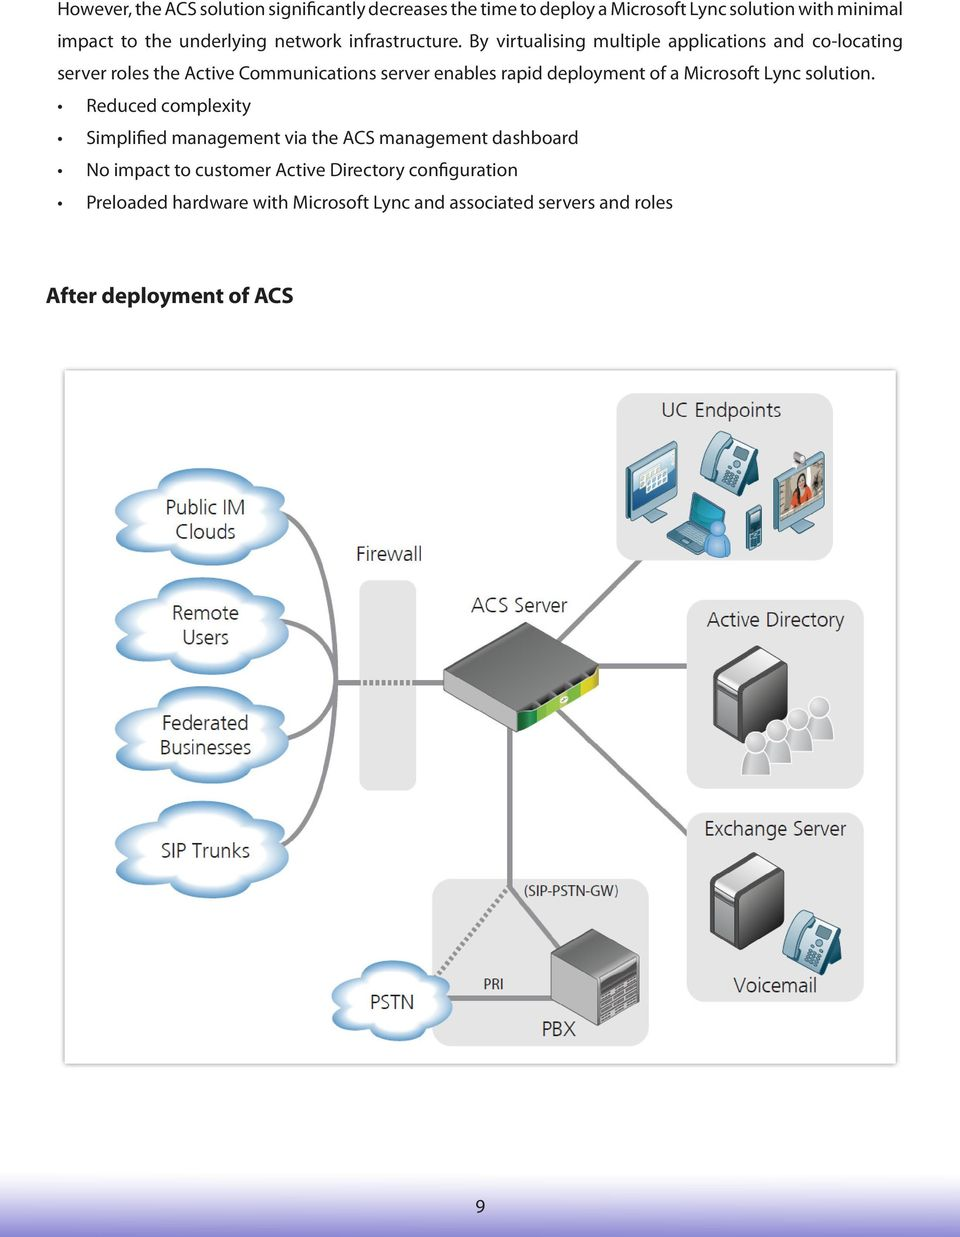 By virtualising multiple applications and co-locating server roles the Active Communications server enables rapid deployment of a